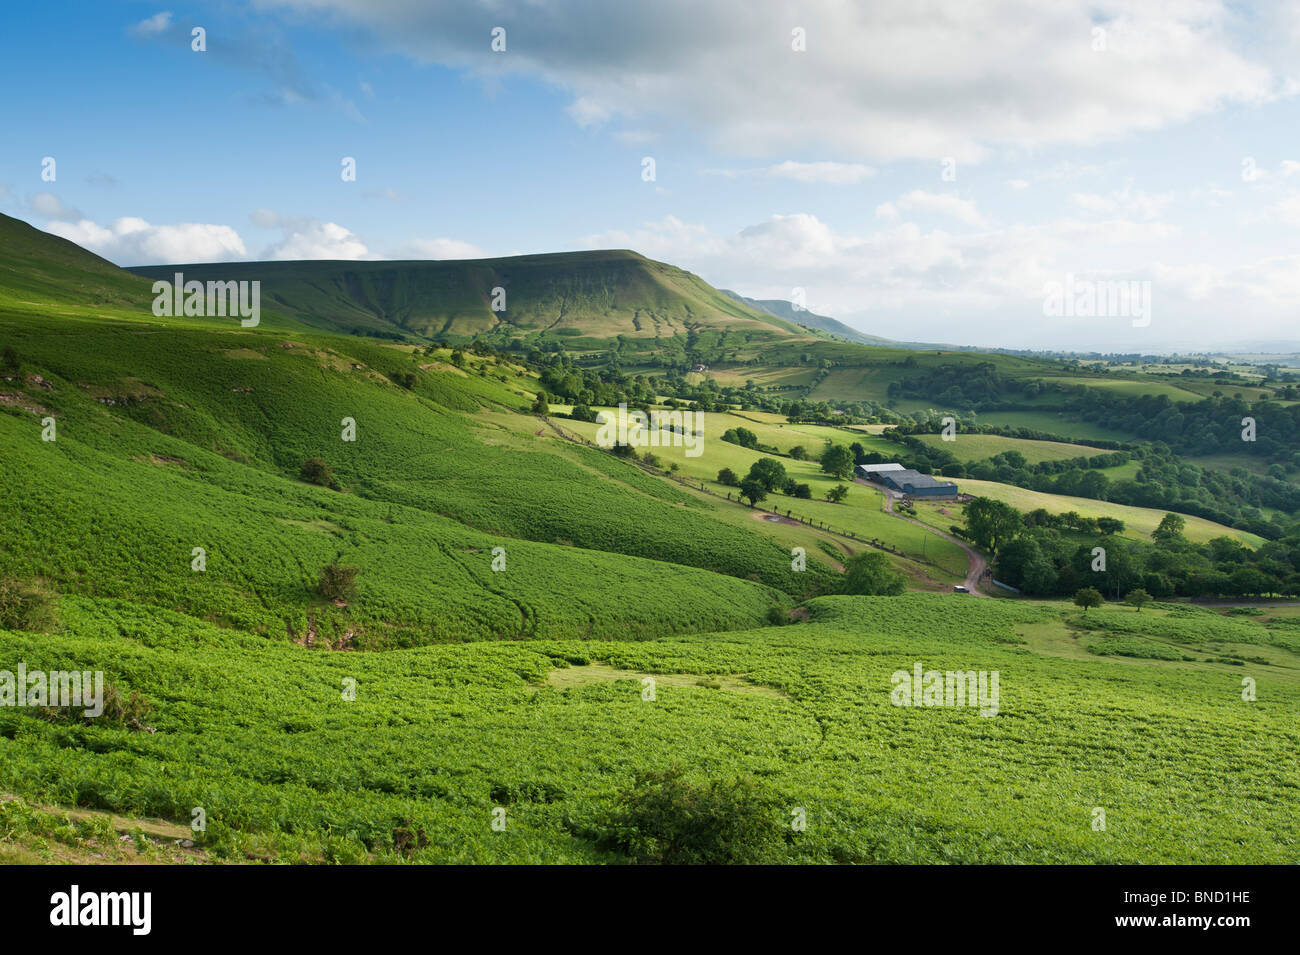 View over common and farm lands towards Twmpa, Hay Bluff, Brecon Beacons national park, Wales - Stock Image